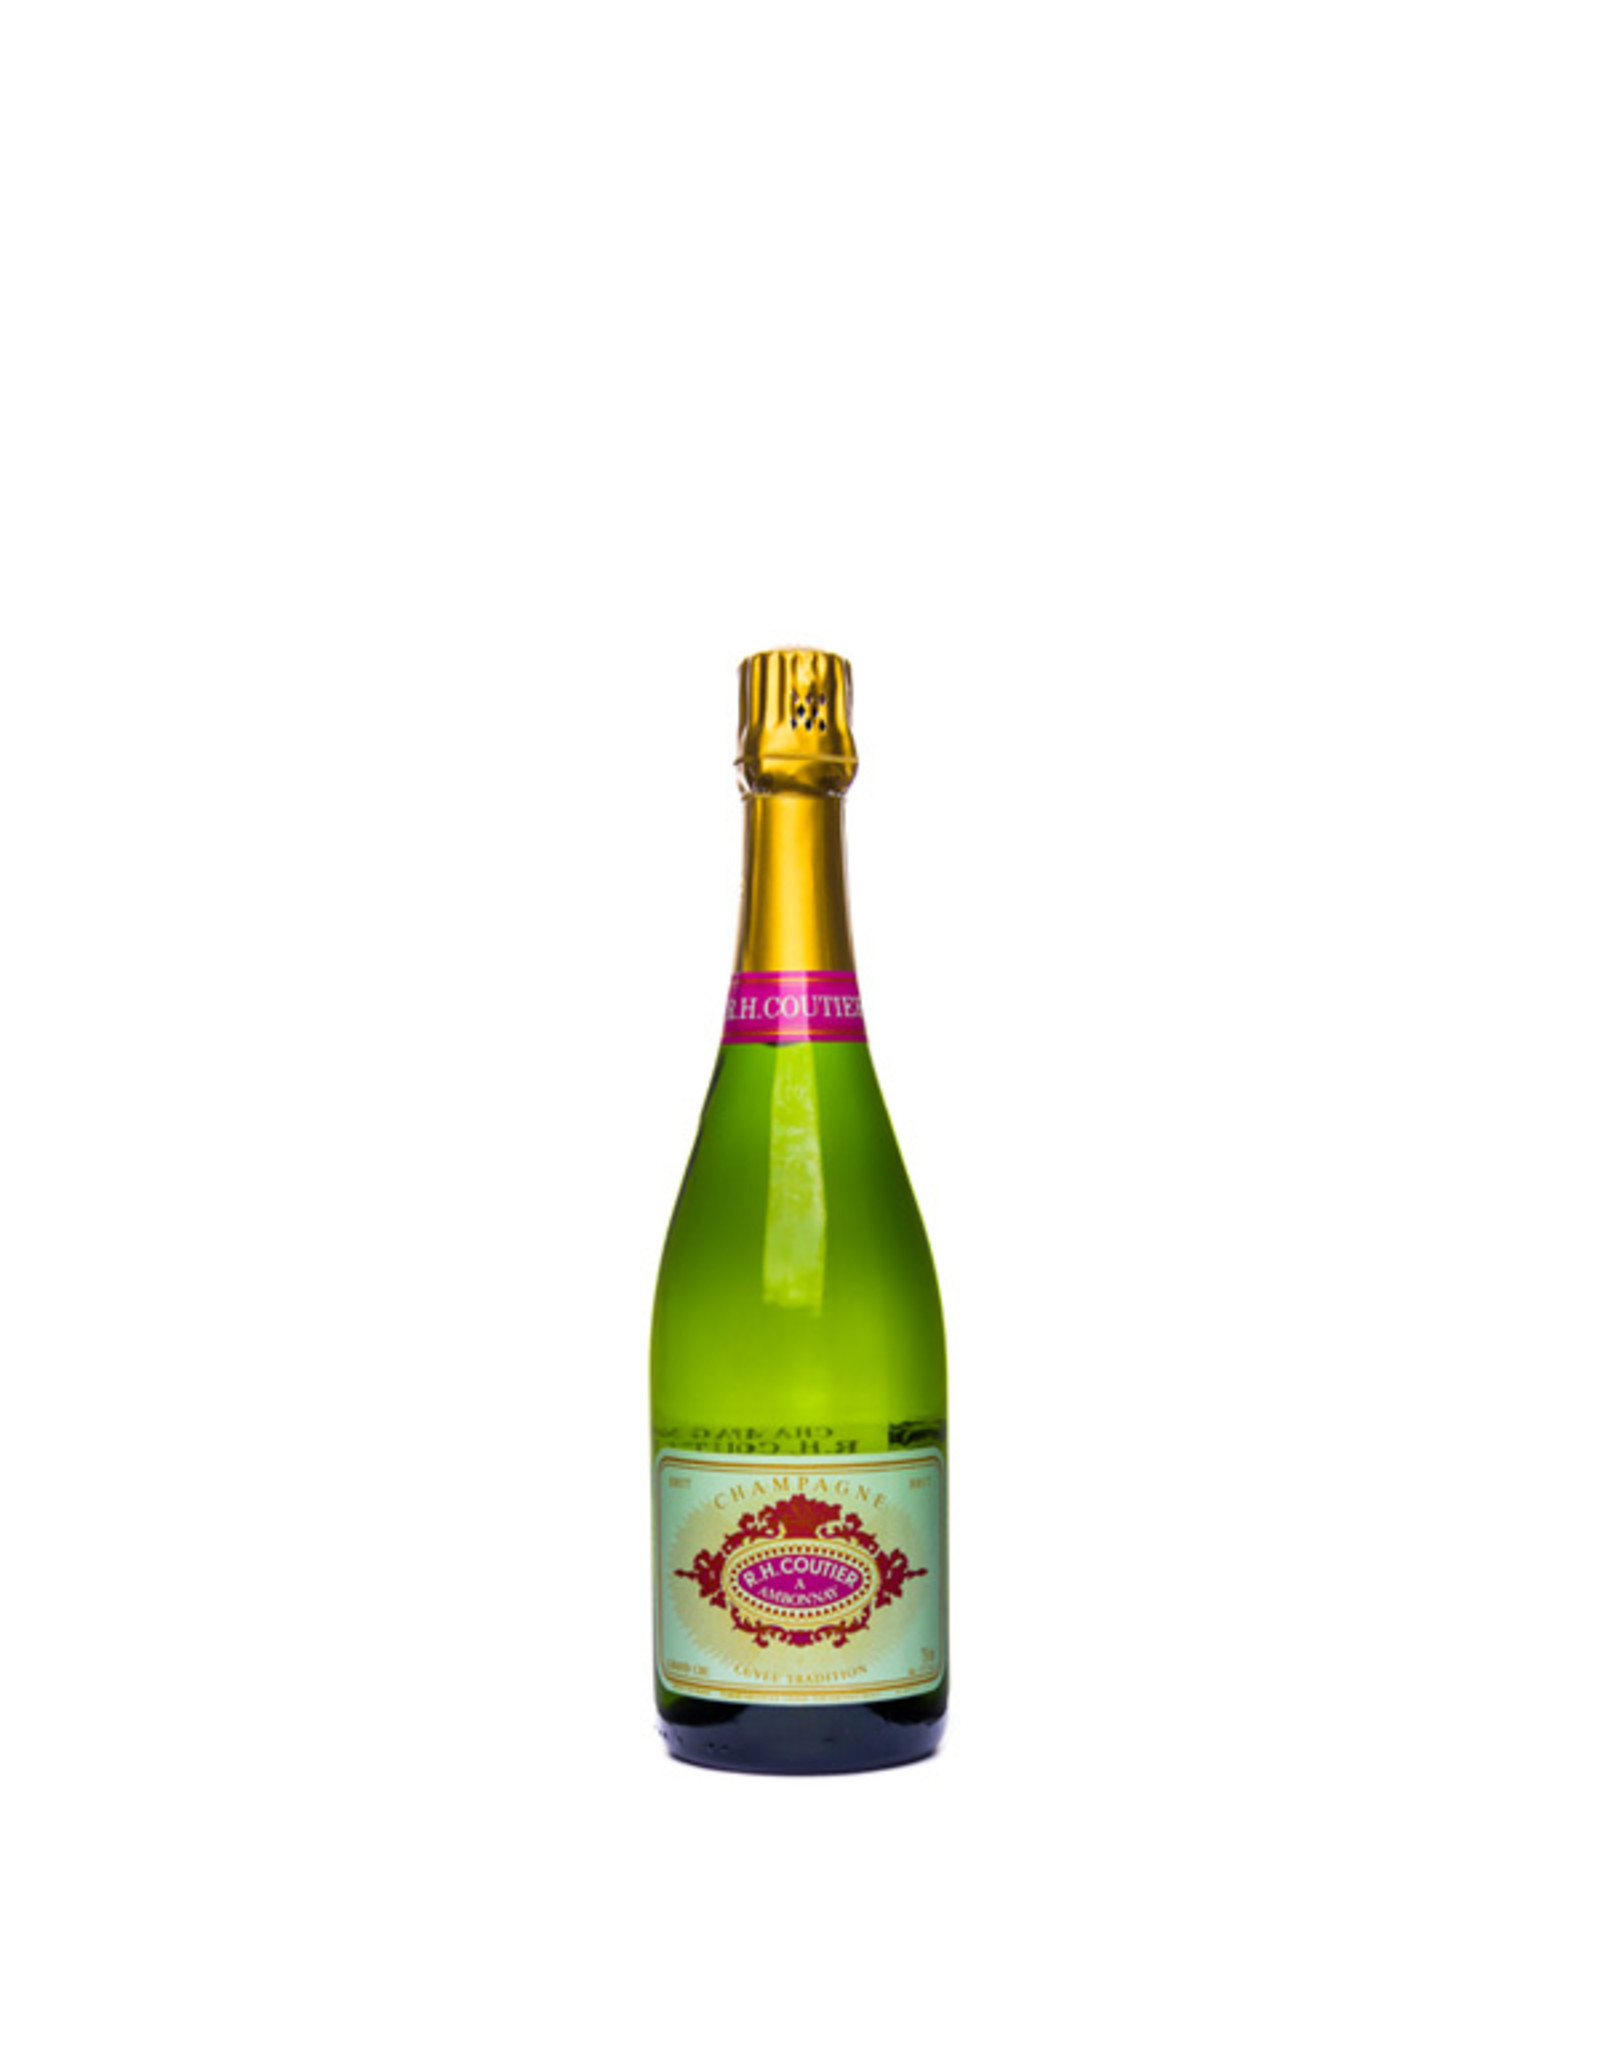 R.H. Coutier, Ambonnay Coutier Champagne Brut Grand Cru Tradition half, Ambonnay